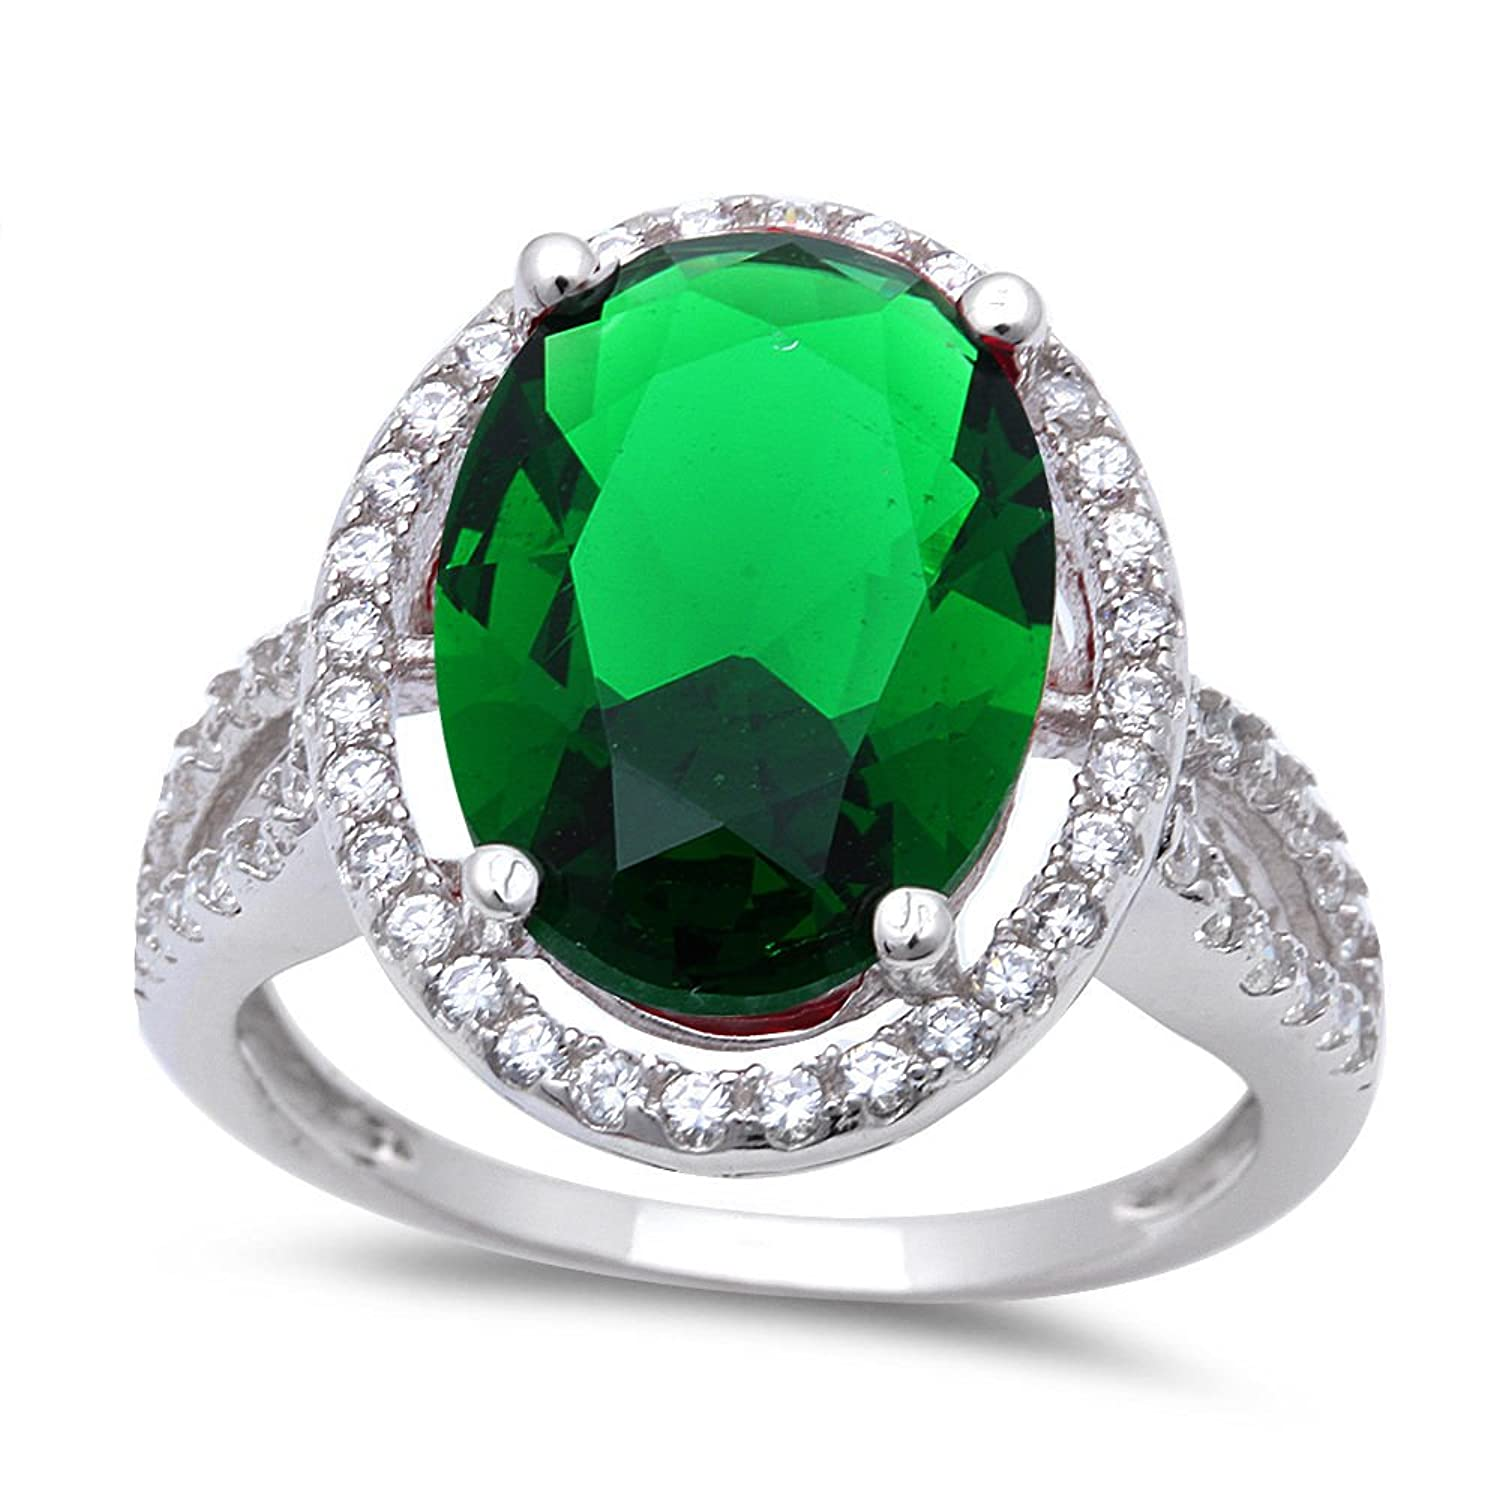 6ct Oval Cut Simulated Emerald & Cz .925 Sterling Silver Ring Sizes 6-9